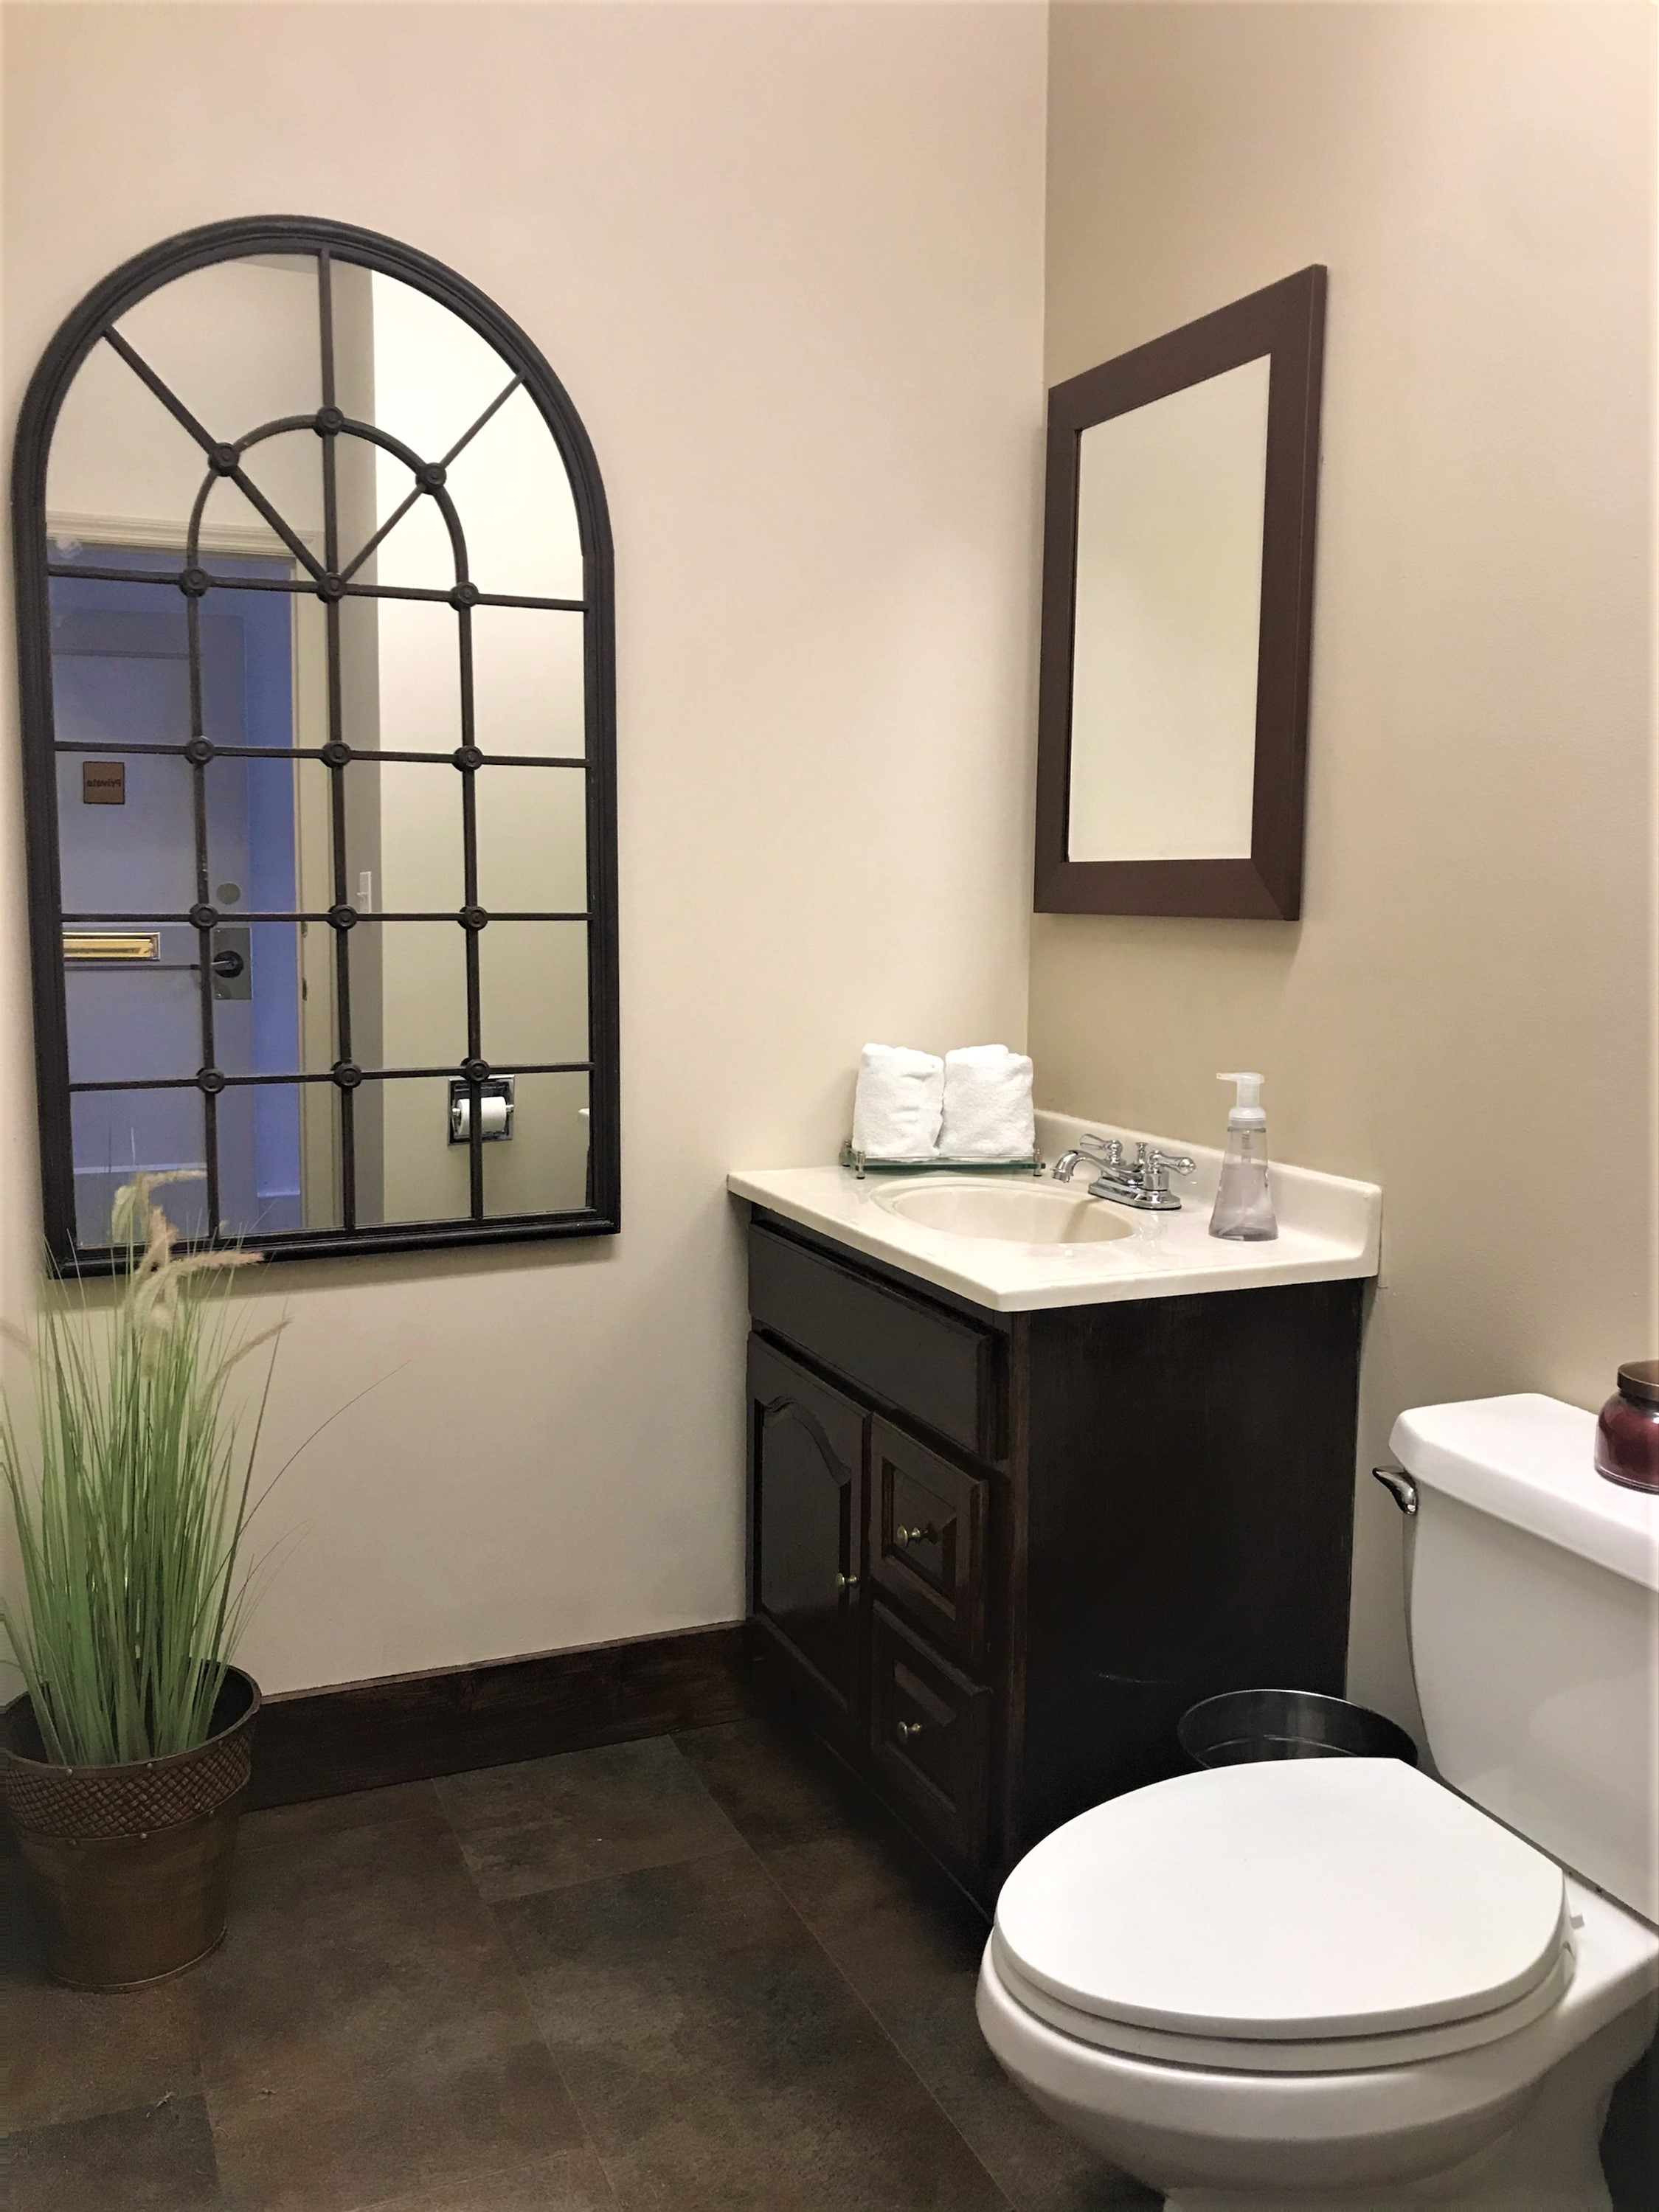 BurlingtonRoom_Bathroom